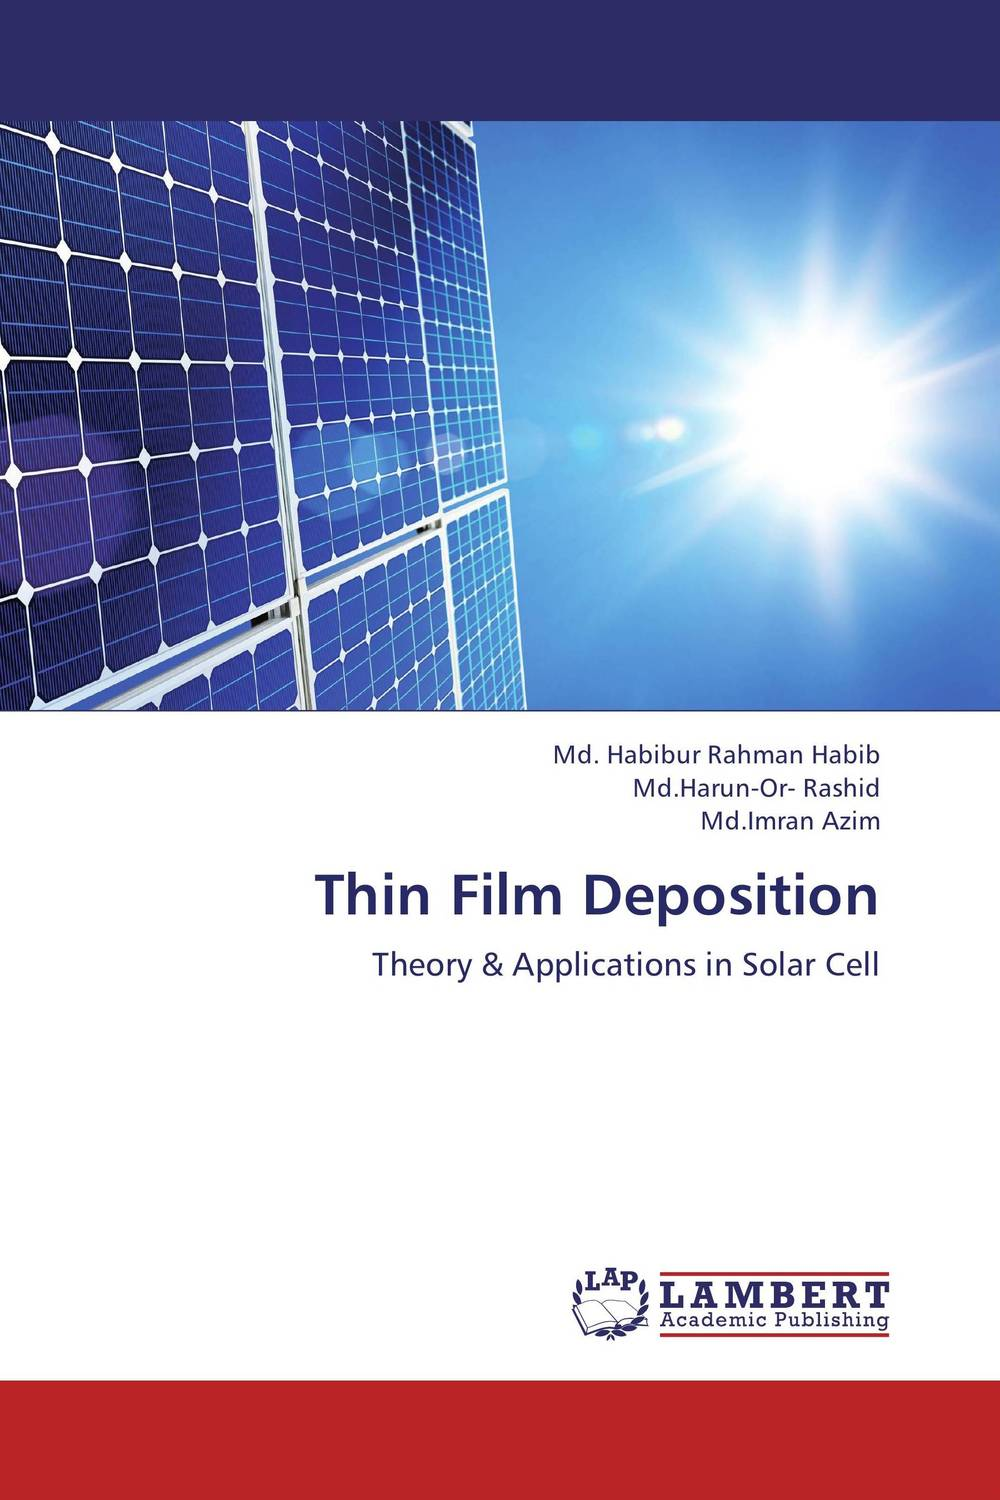 Thin Film Deposition pressure dependent growth of lithium cobaltate thin films